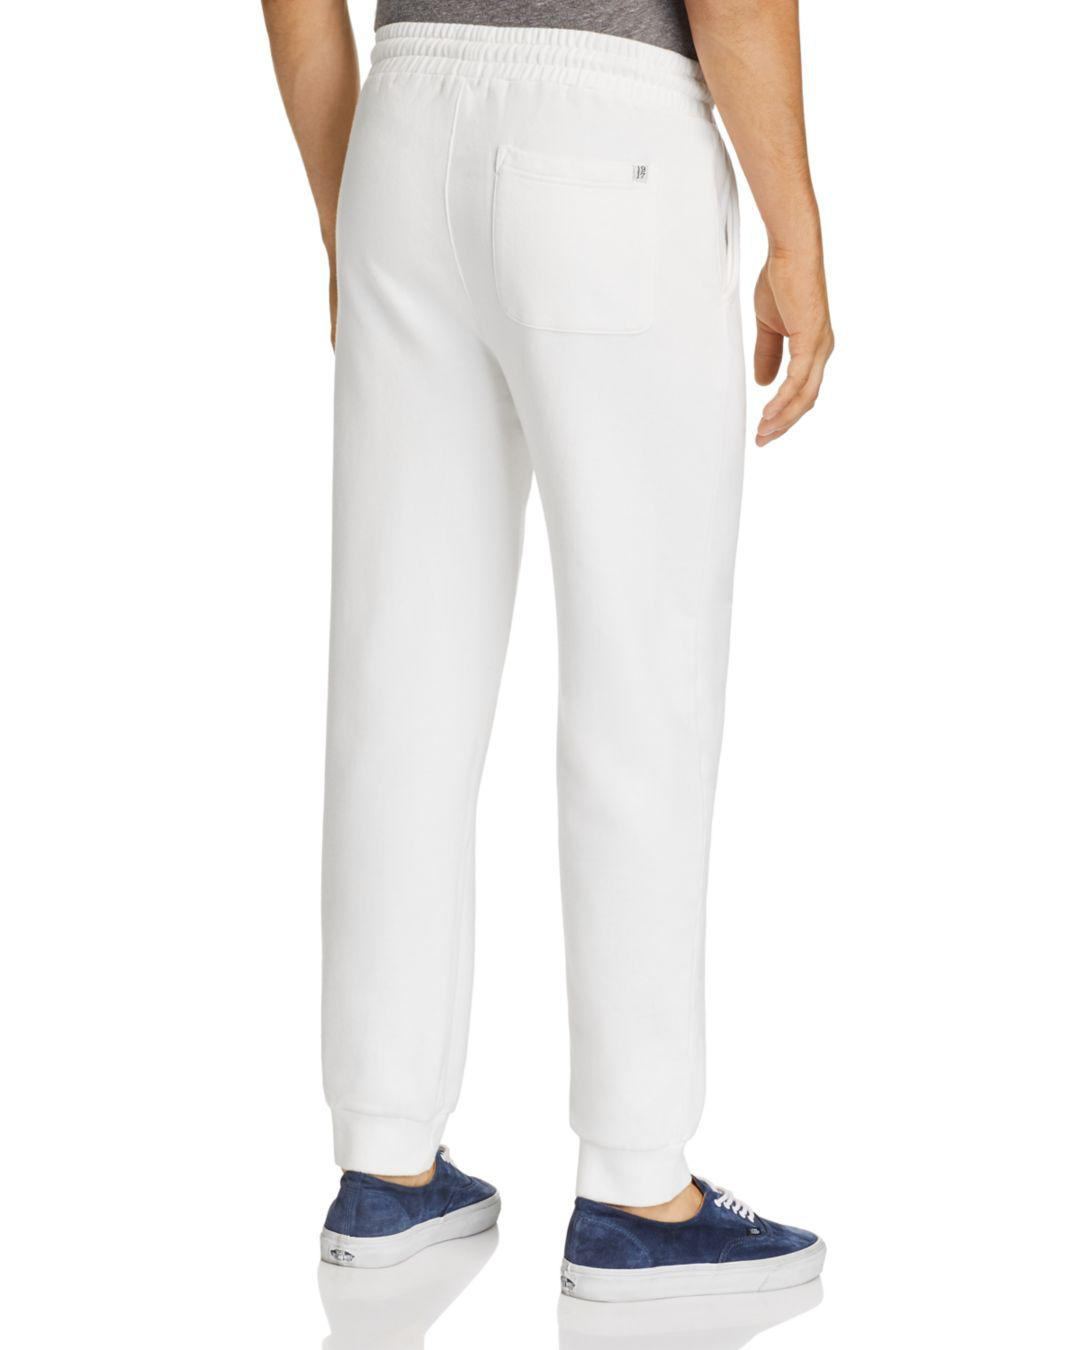 6f5cedfc5e7206 Lyst - Sovereign Code Patrol Sweatpants in White for Men